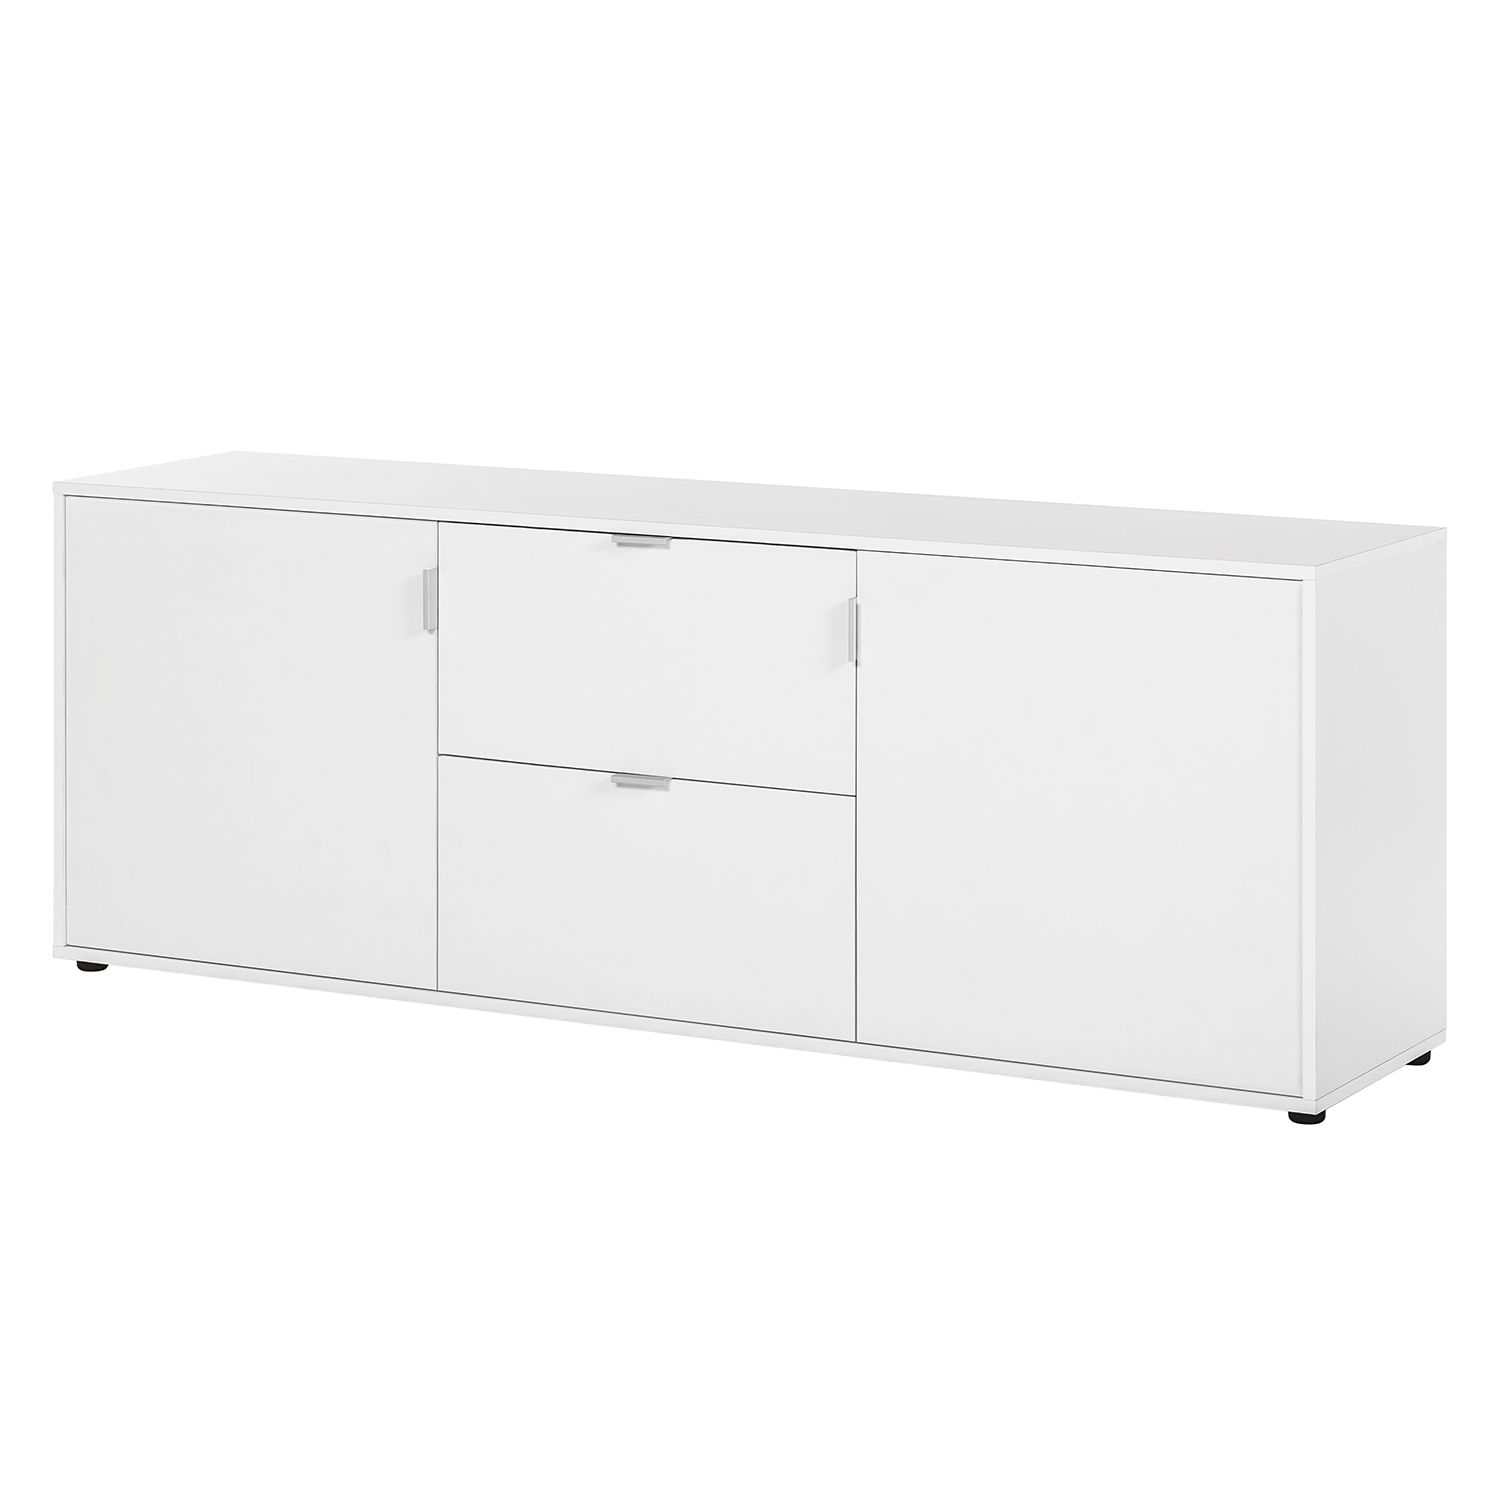 Buffet KiYDOO smart - Bianco alpino, KIYDOO